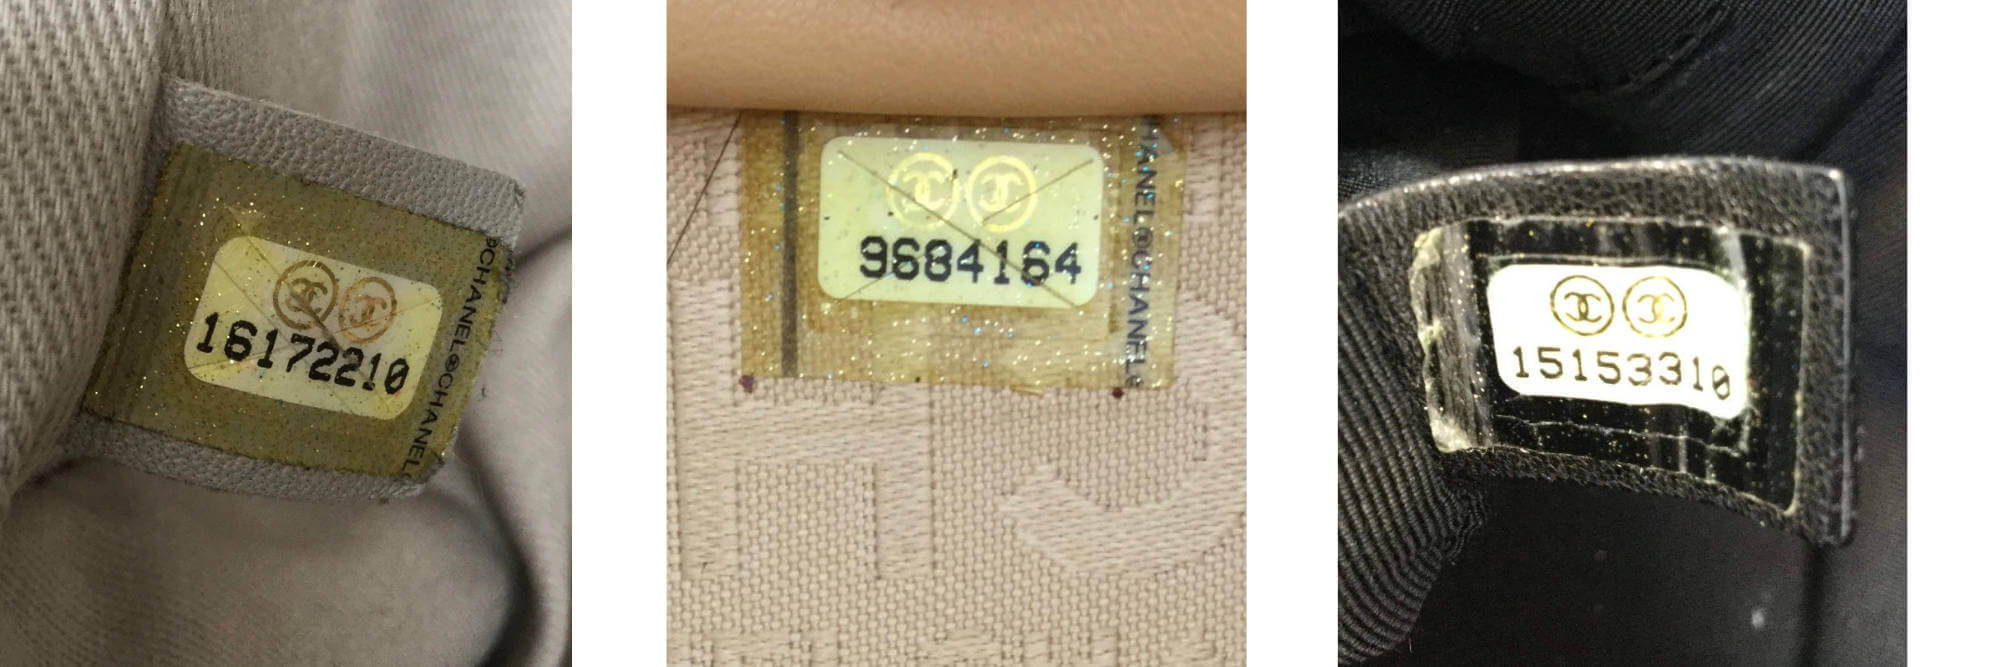 Chanel bag serial number examples